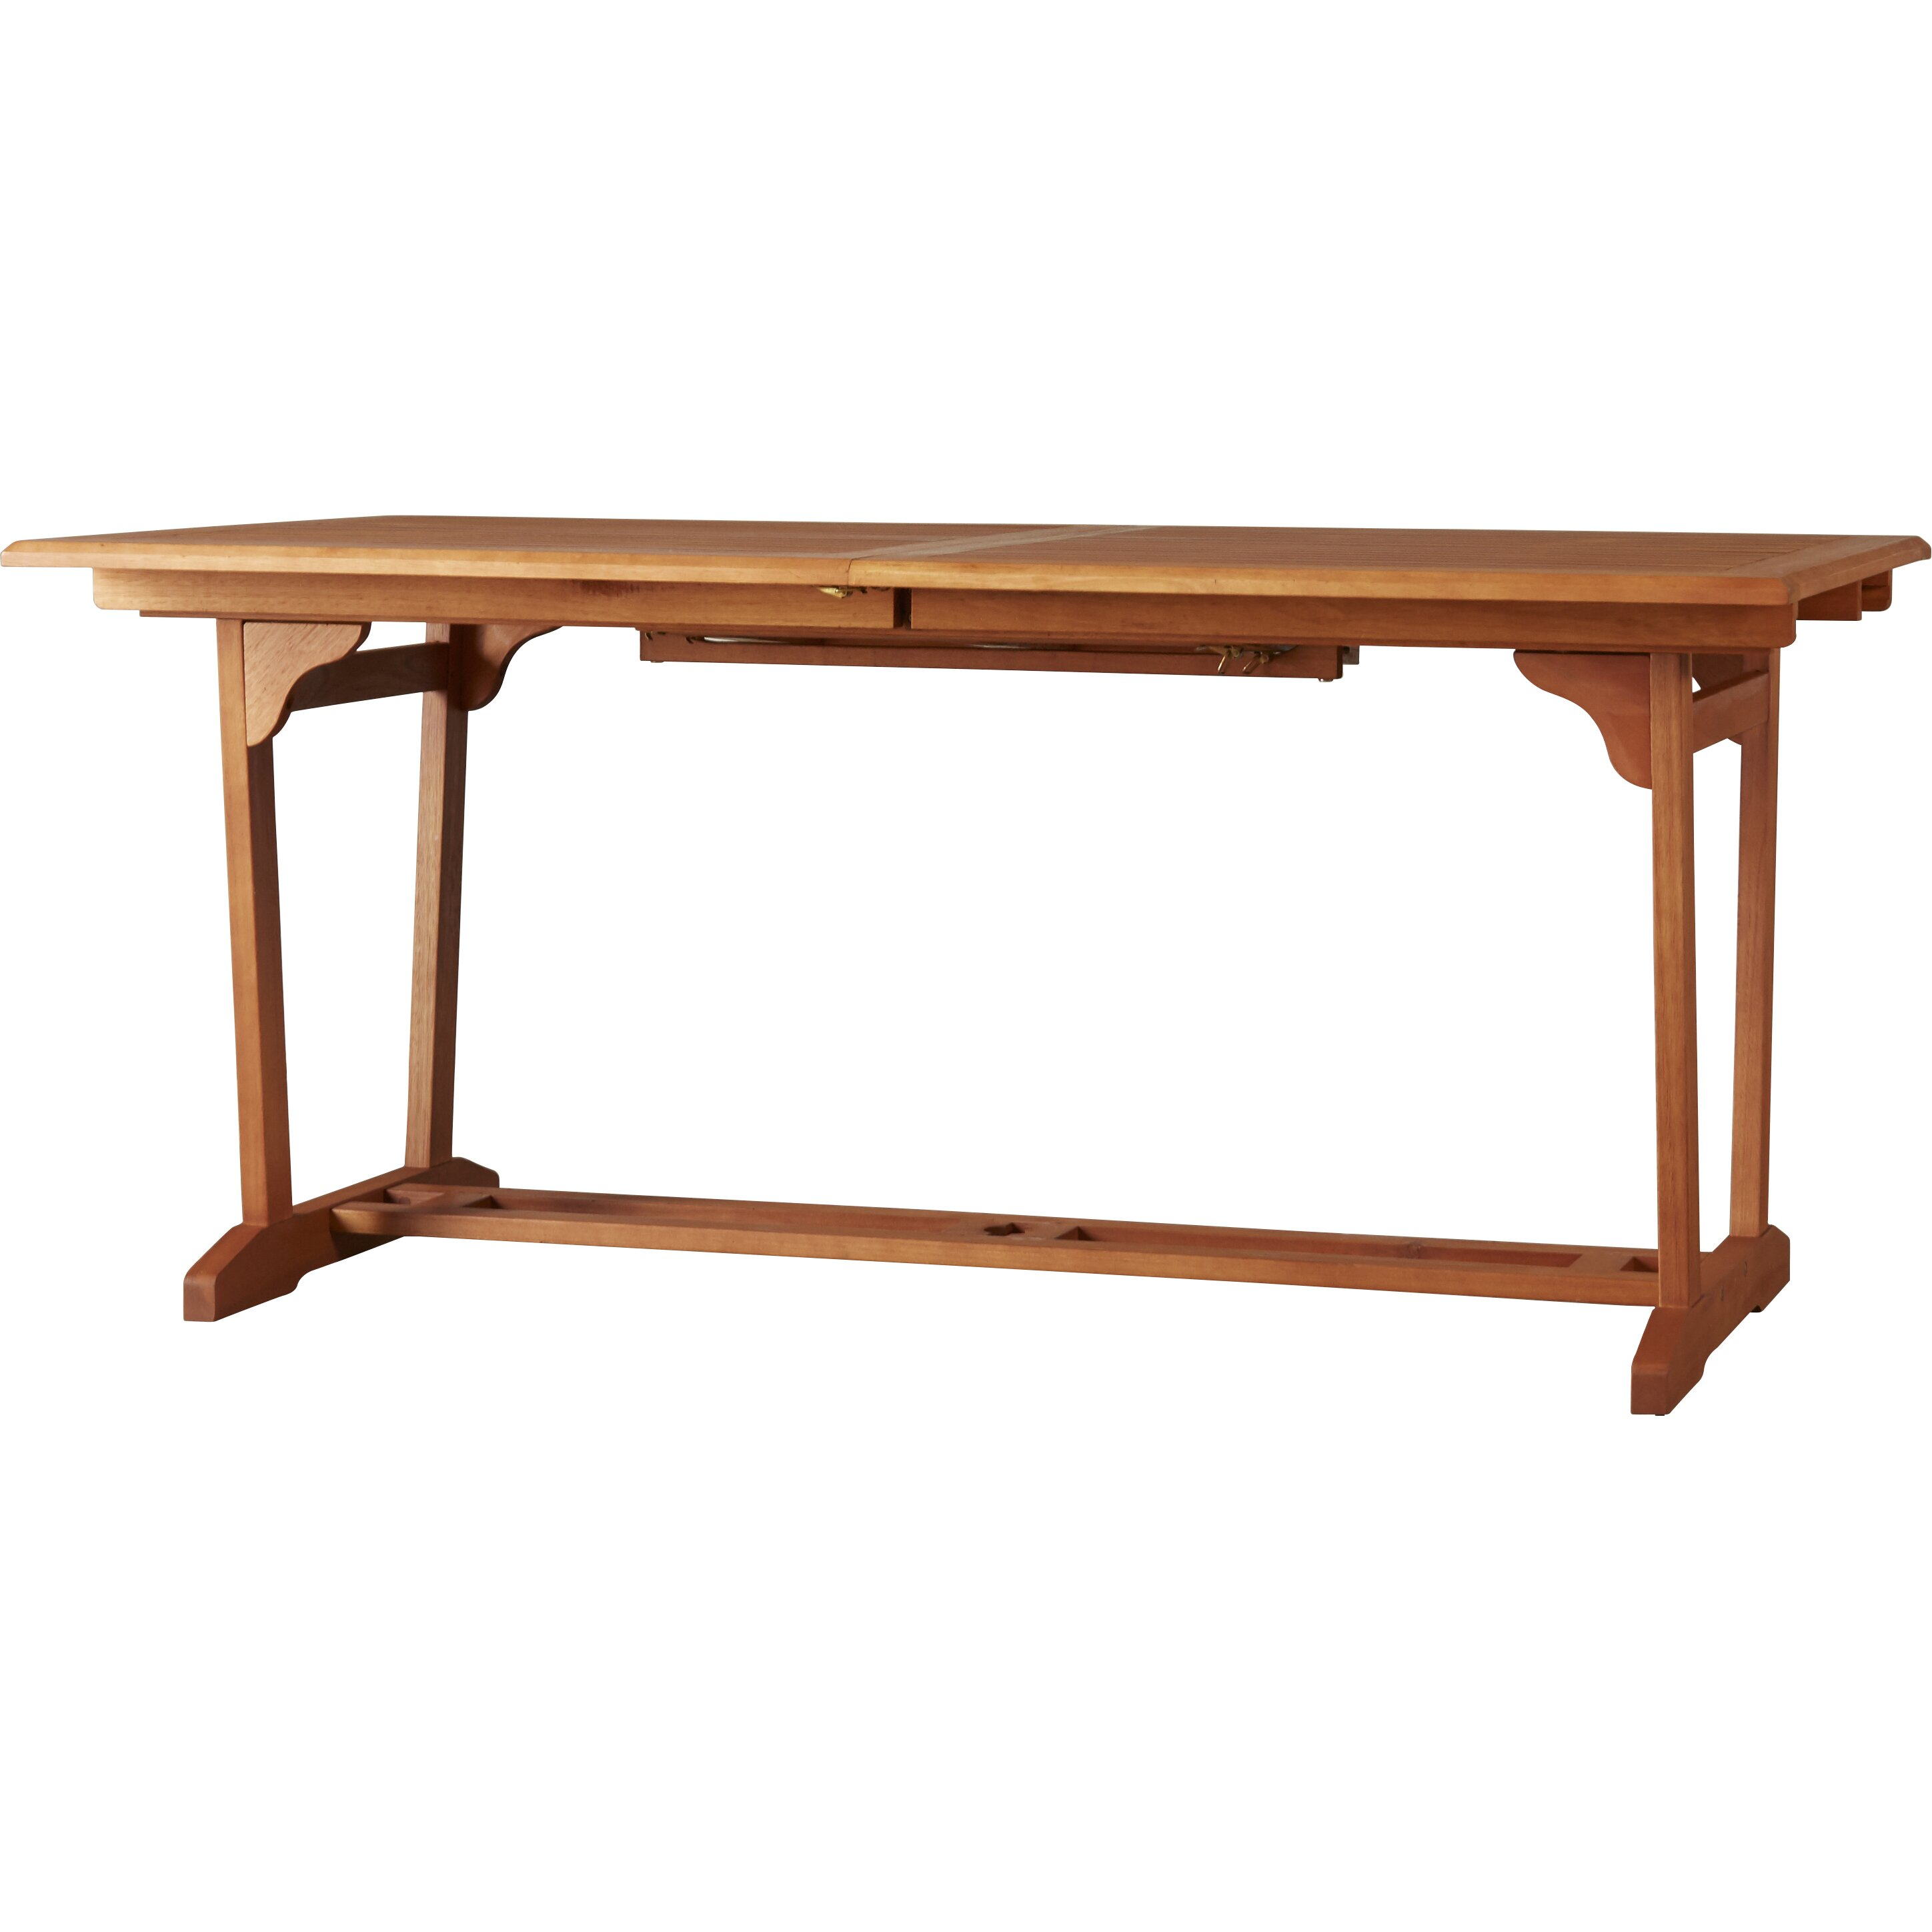 Darby Home Co Goolsby Rectangular Extension Dining Table  : Darby Home Co25C225AE Goolsby Rectangular Extension Dining Table from www.wayfair.com size 2897 x 2897 jpeg 348kB